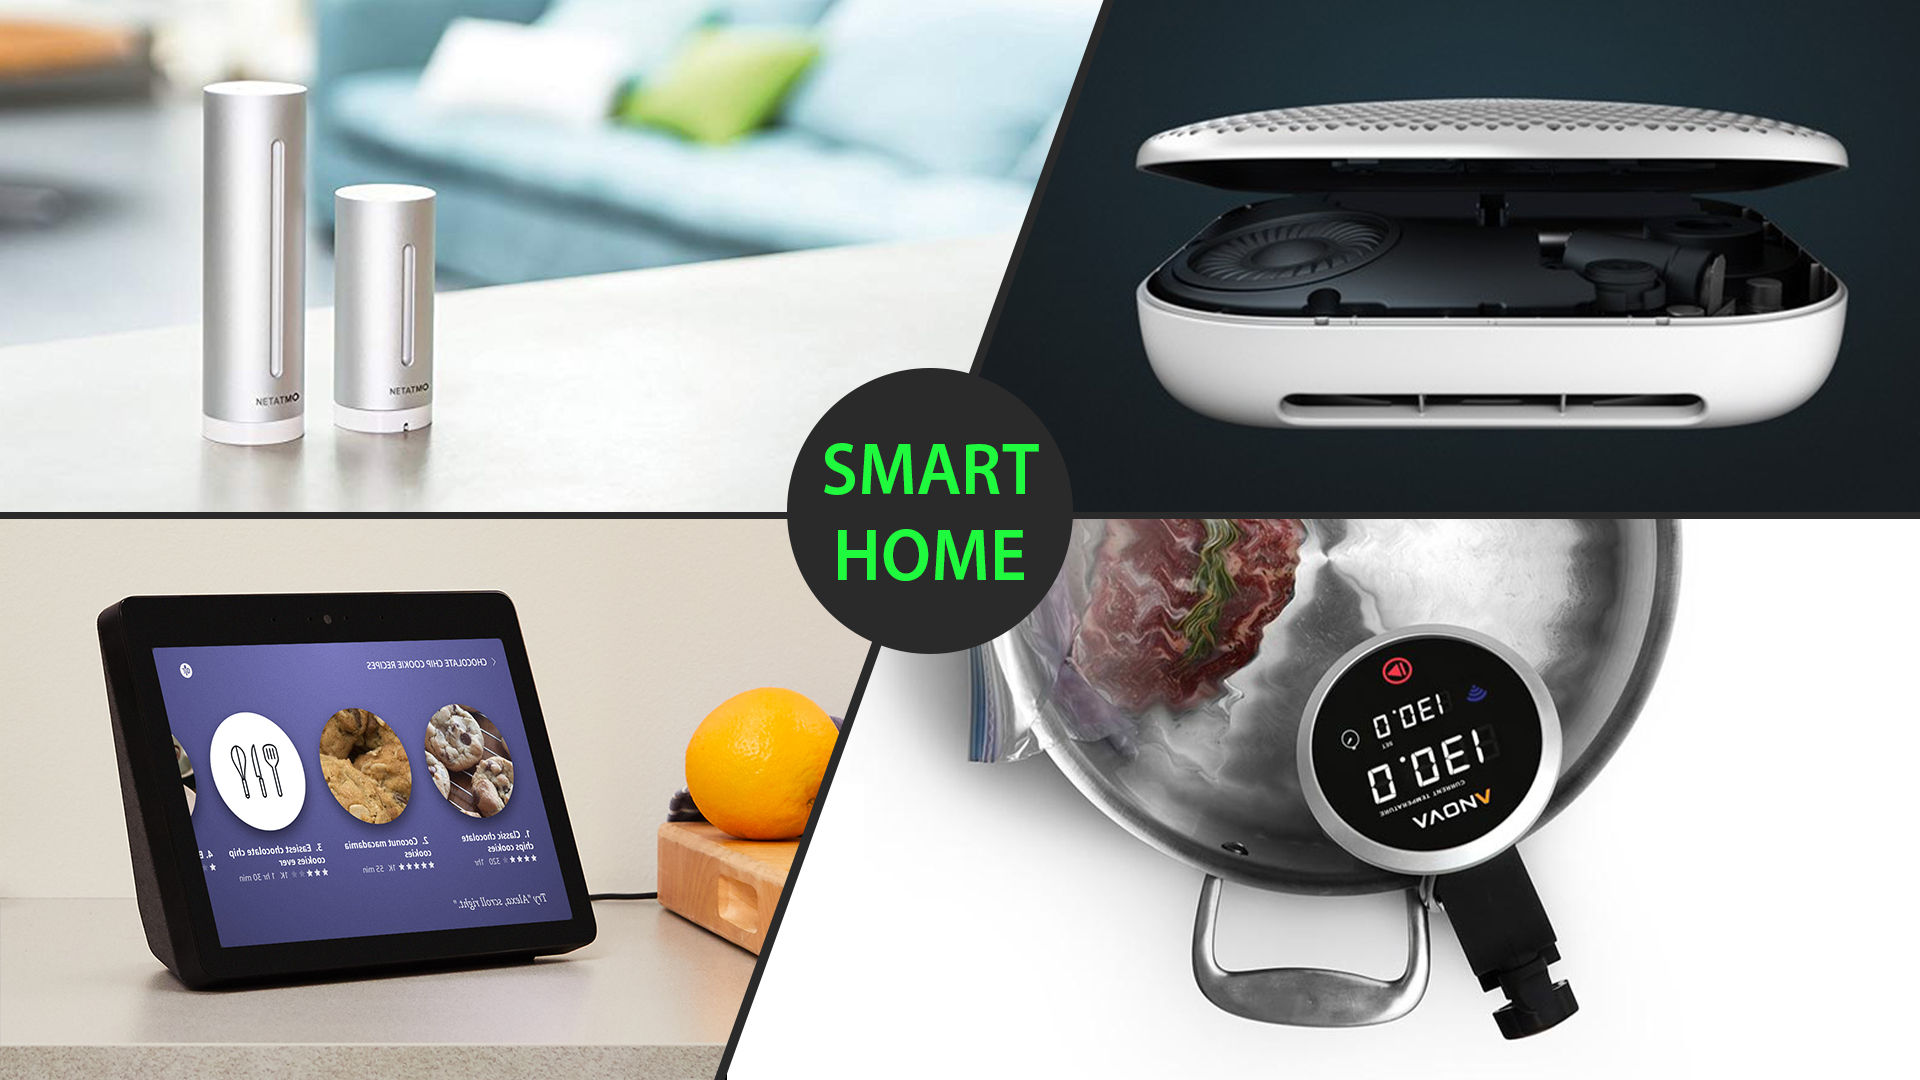 Top 10 Smart Home Gadgets 2019 Digitale Welt